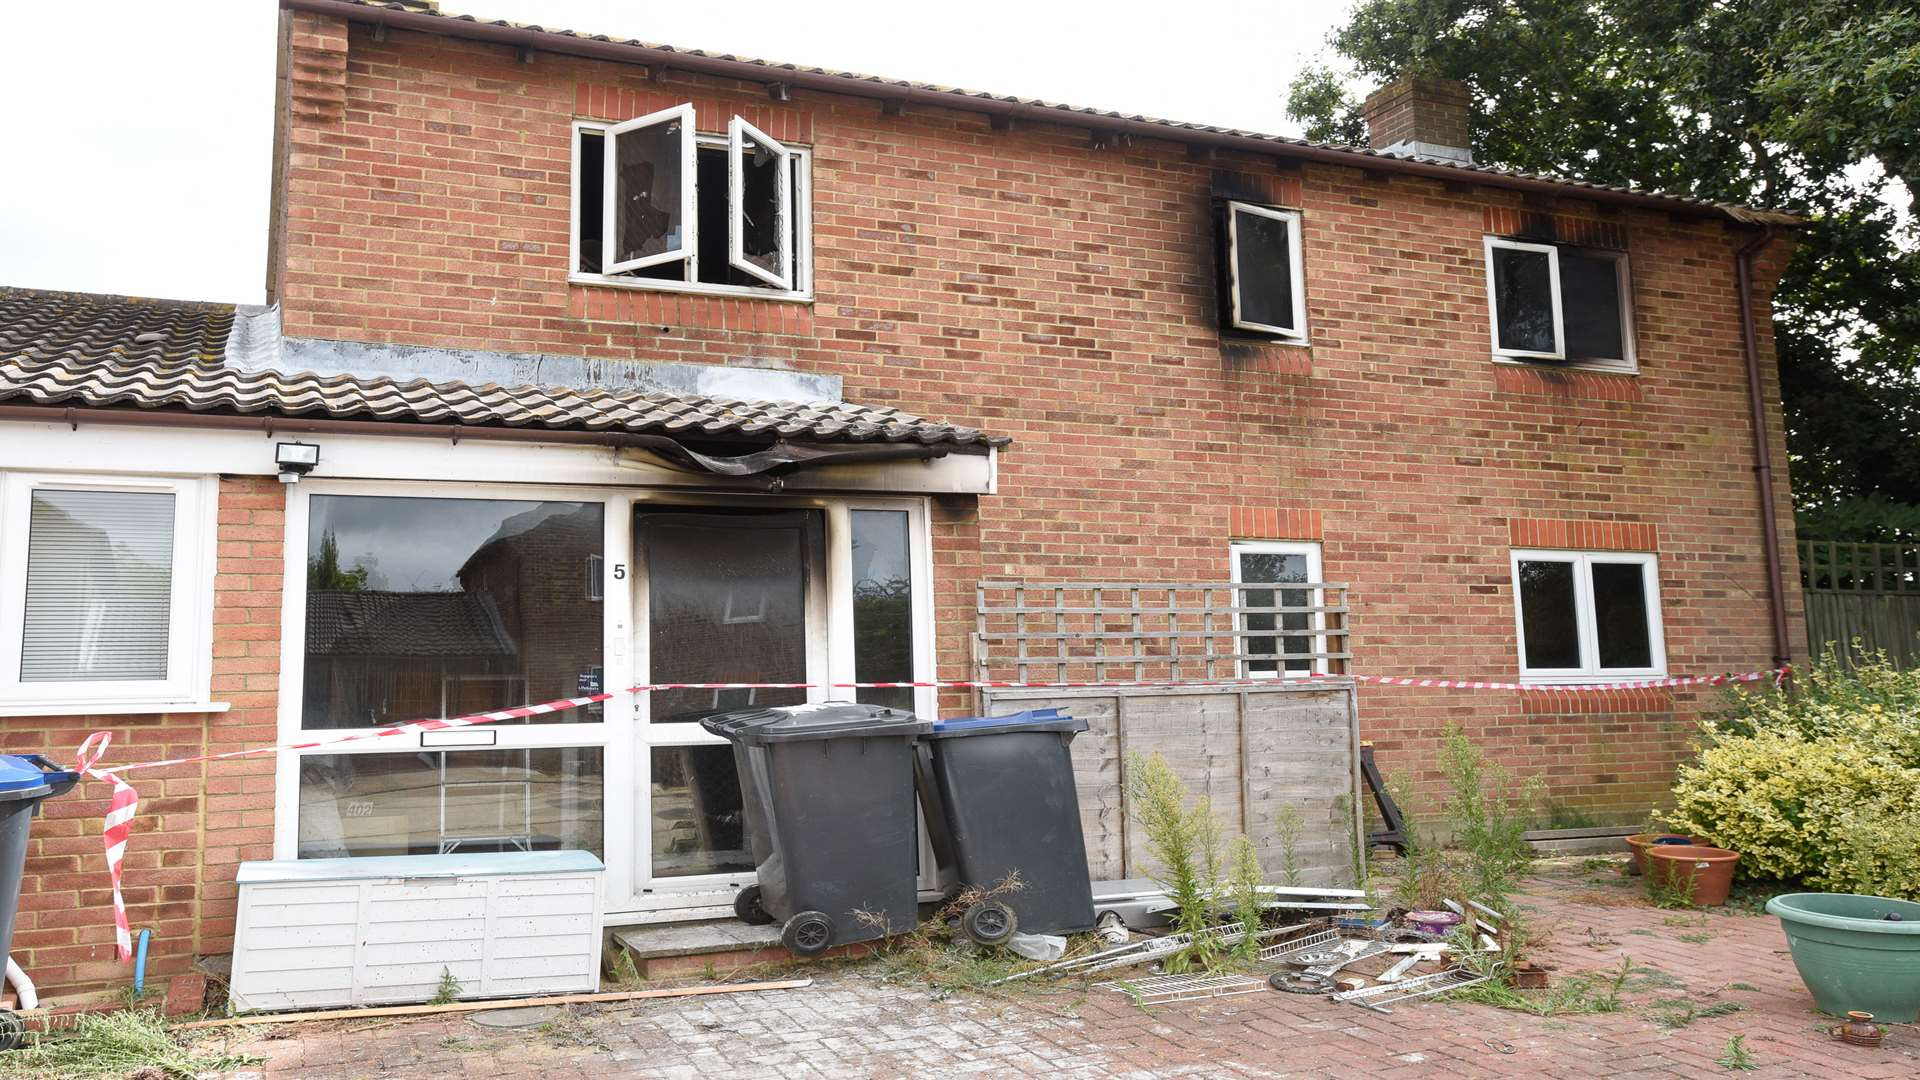 The house was left severely damaged after a fire